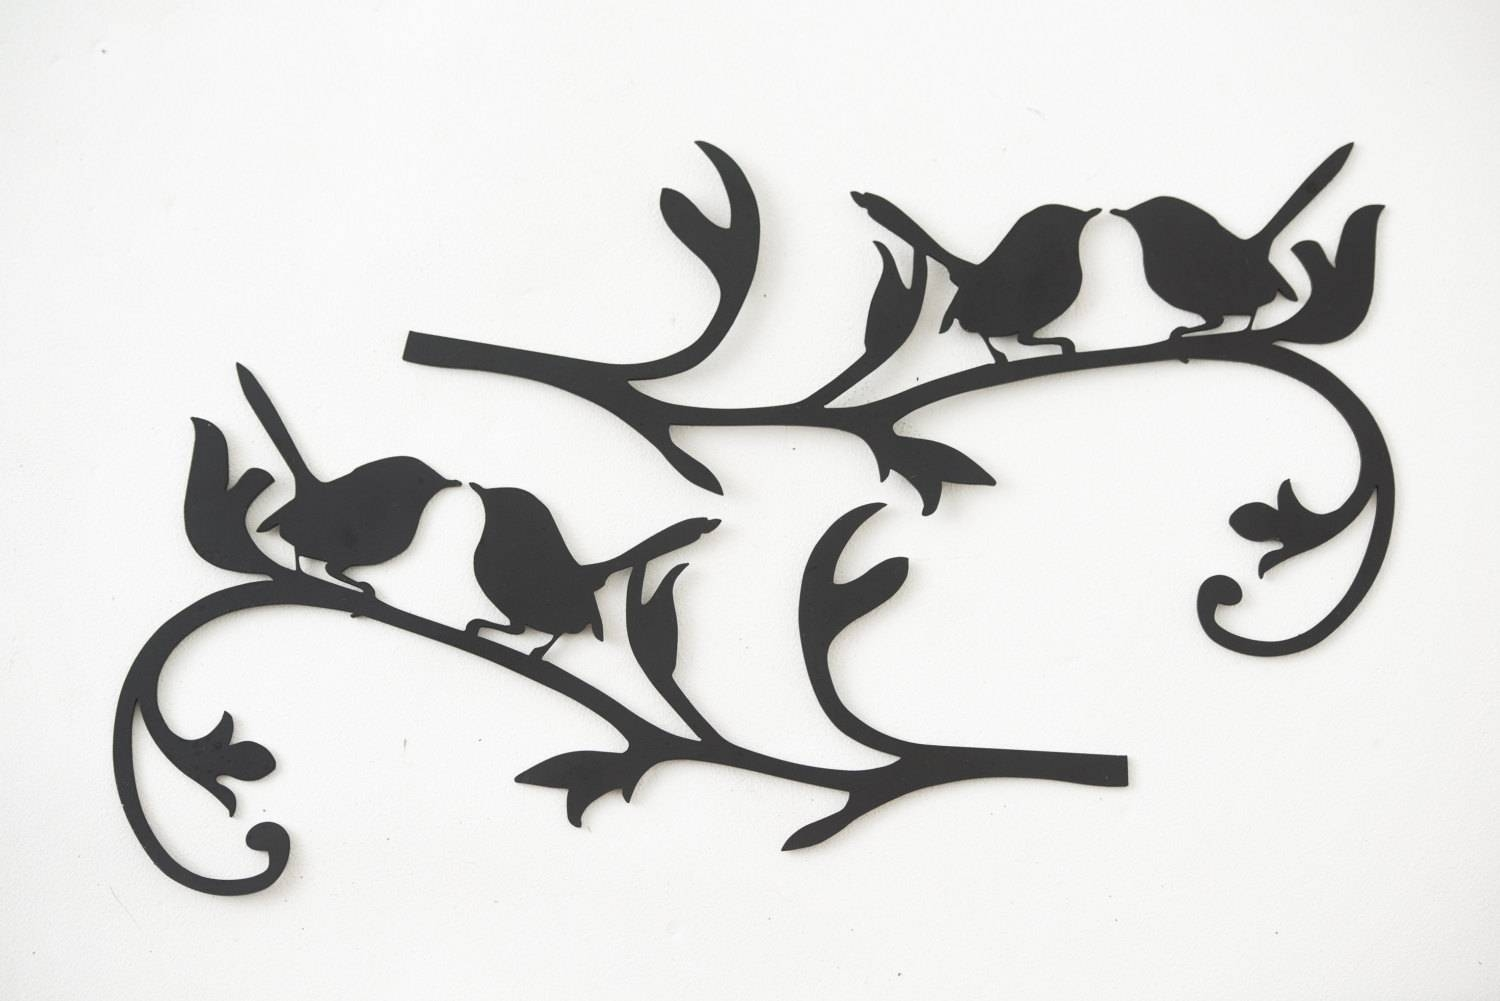 Wall Art Designs: Metal Bird Wall Art Hand Drawn And Laser Cut With Regard To Latest Birds Metal Wall Art (View 7 of 20)